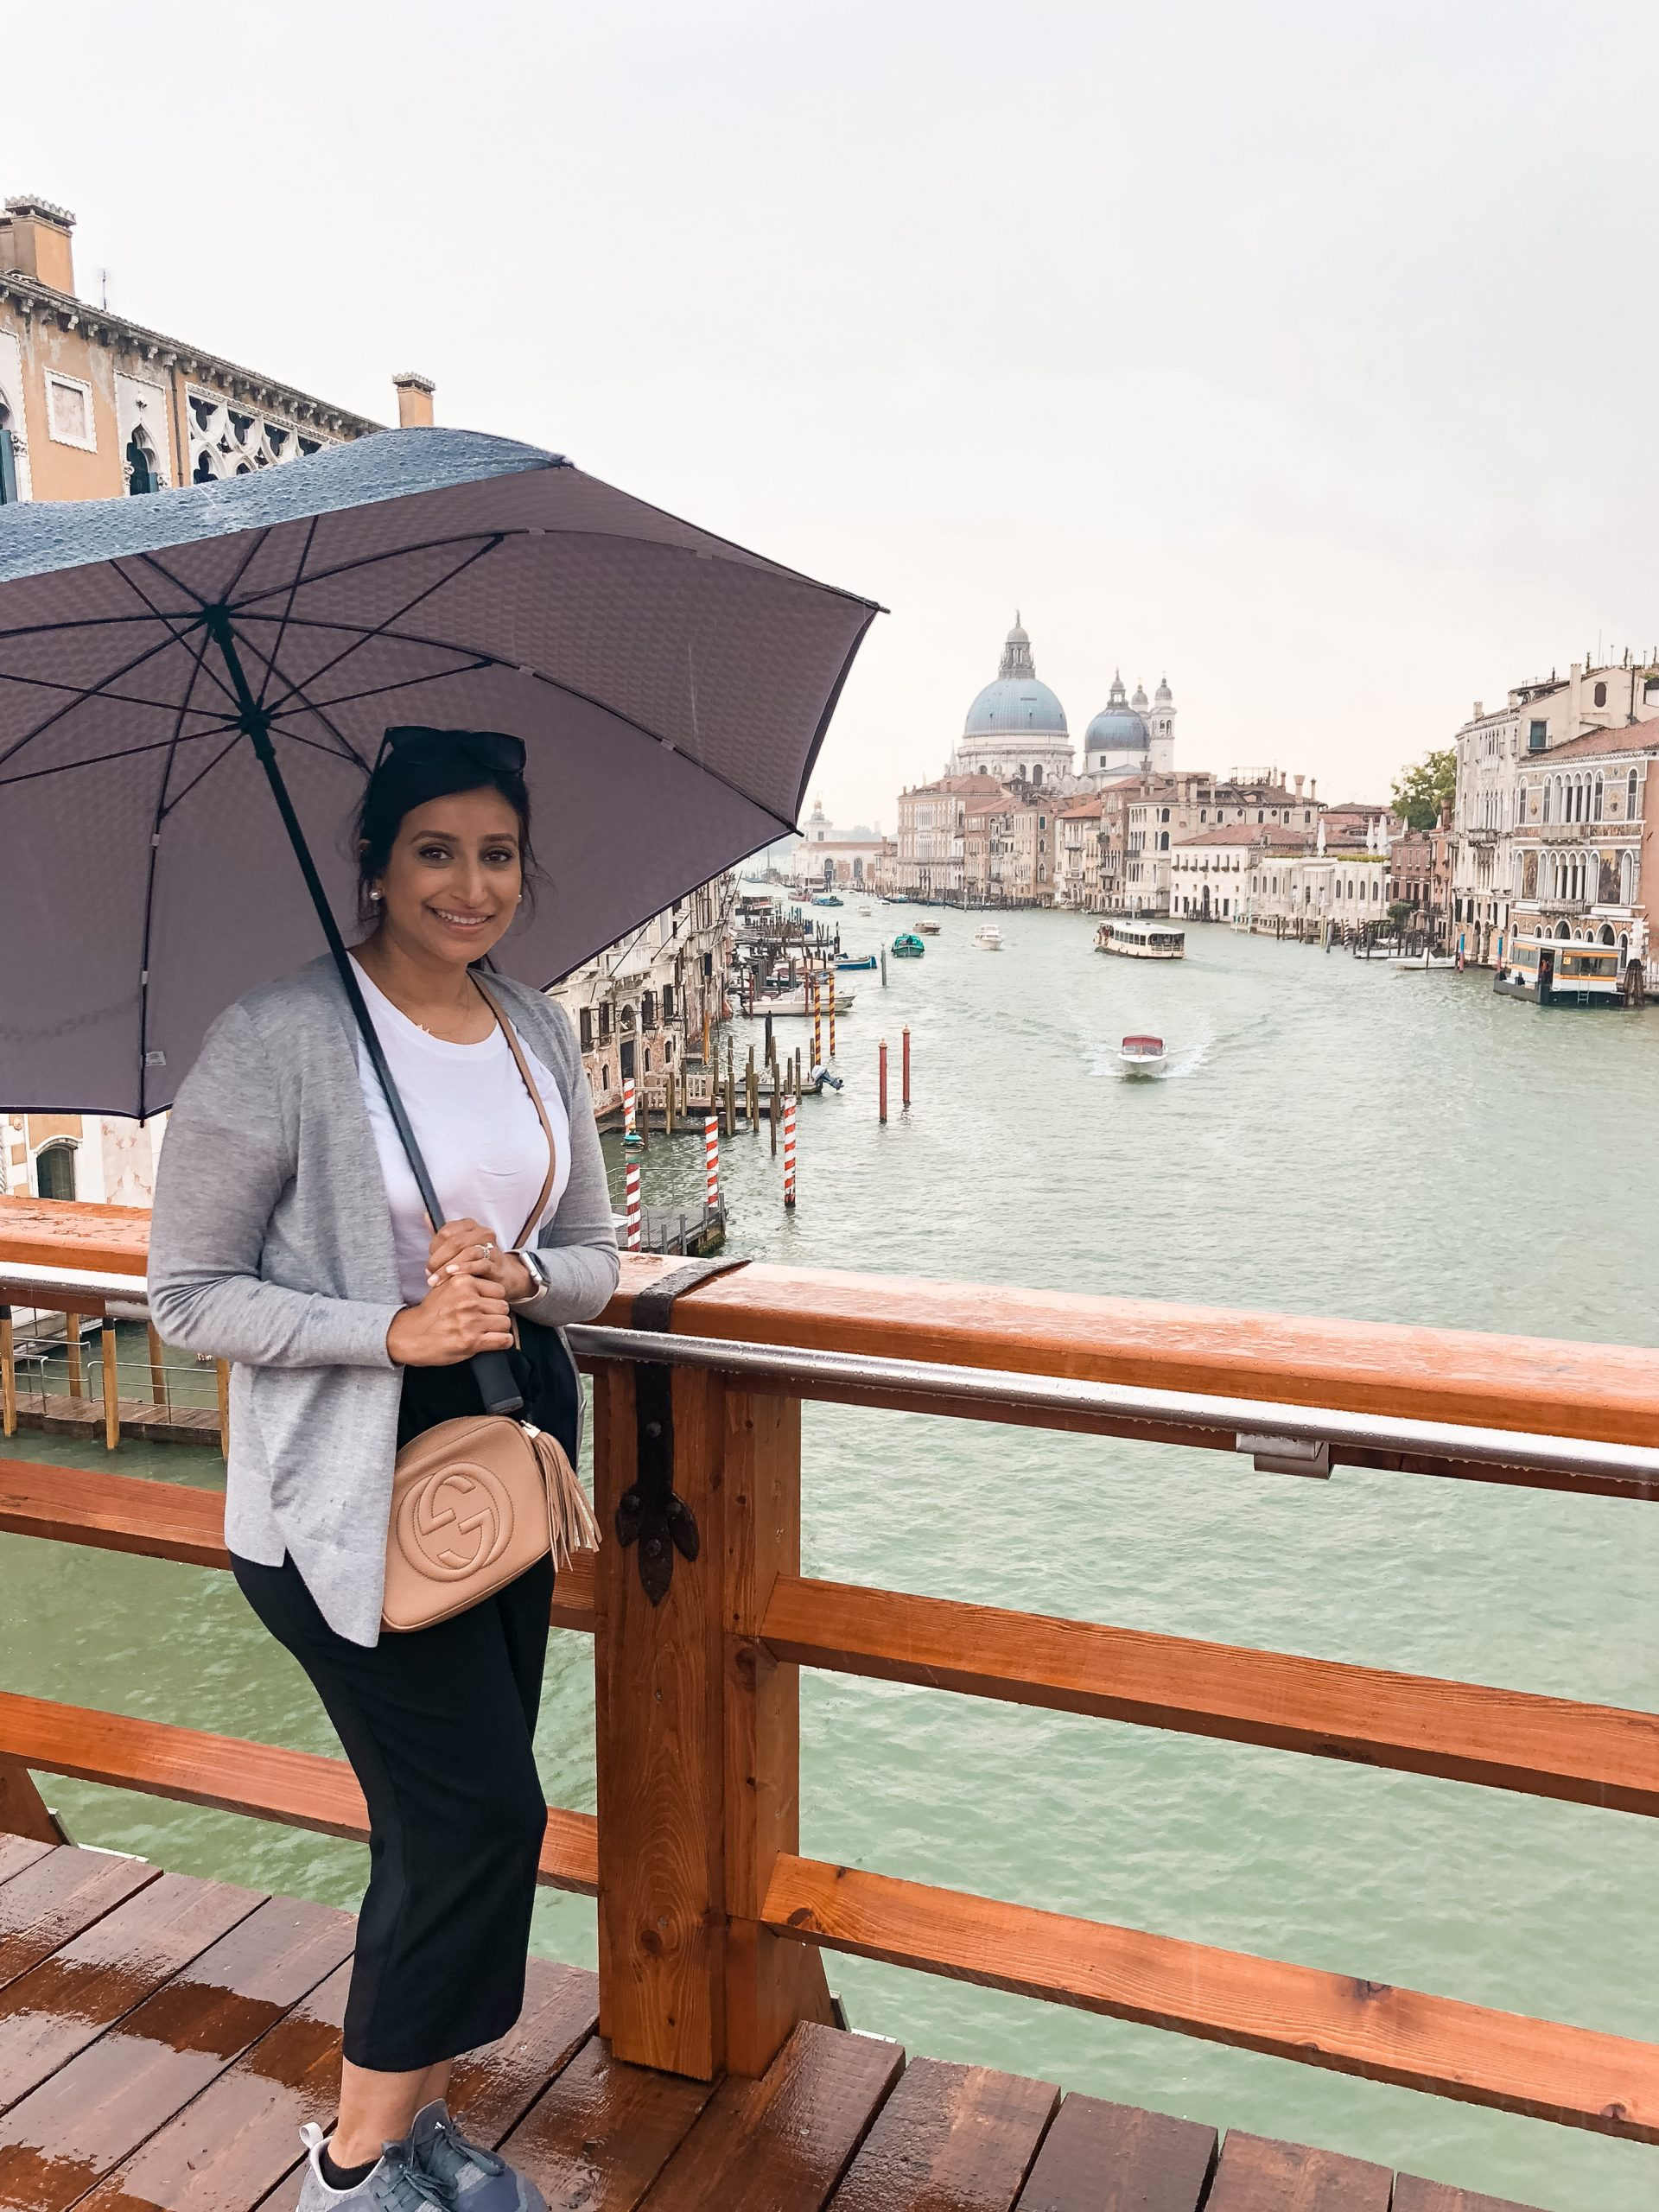 a picture of me with an umbrella with Gallerie dell'Accademia in the background